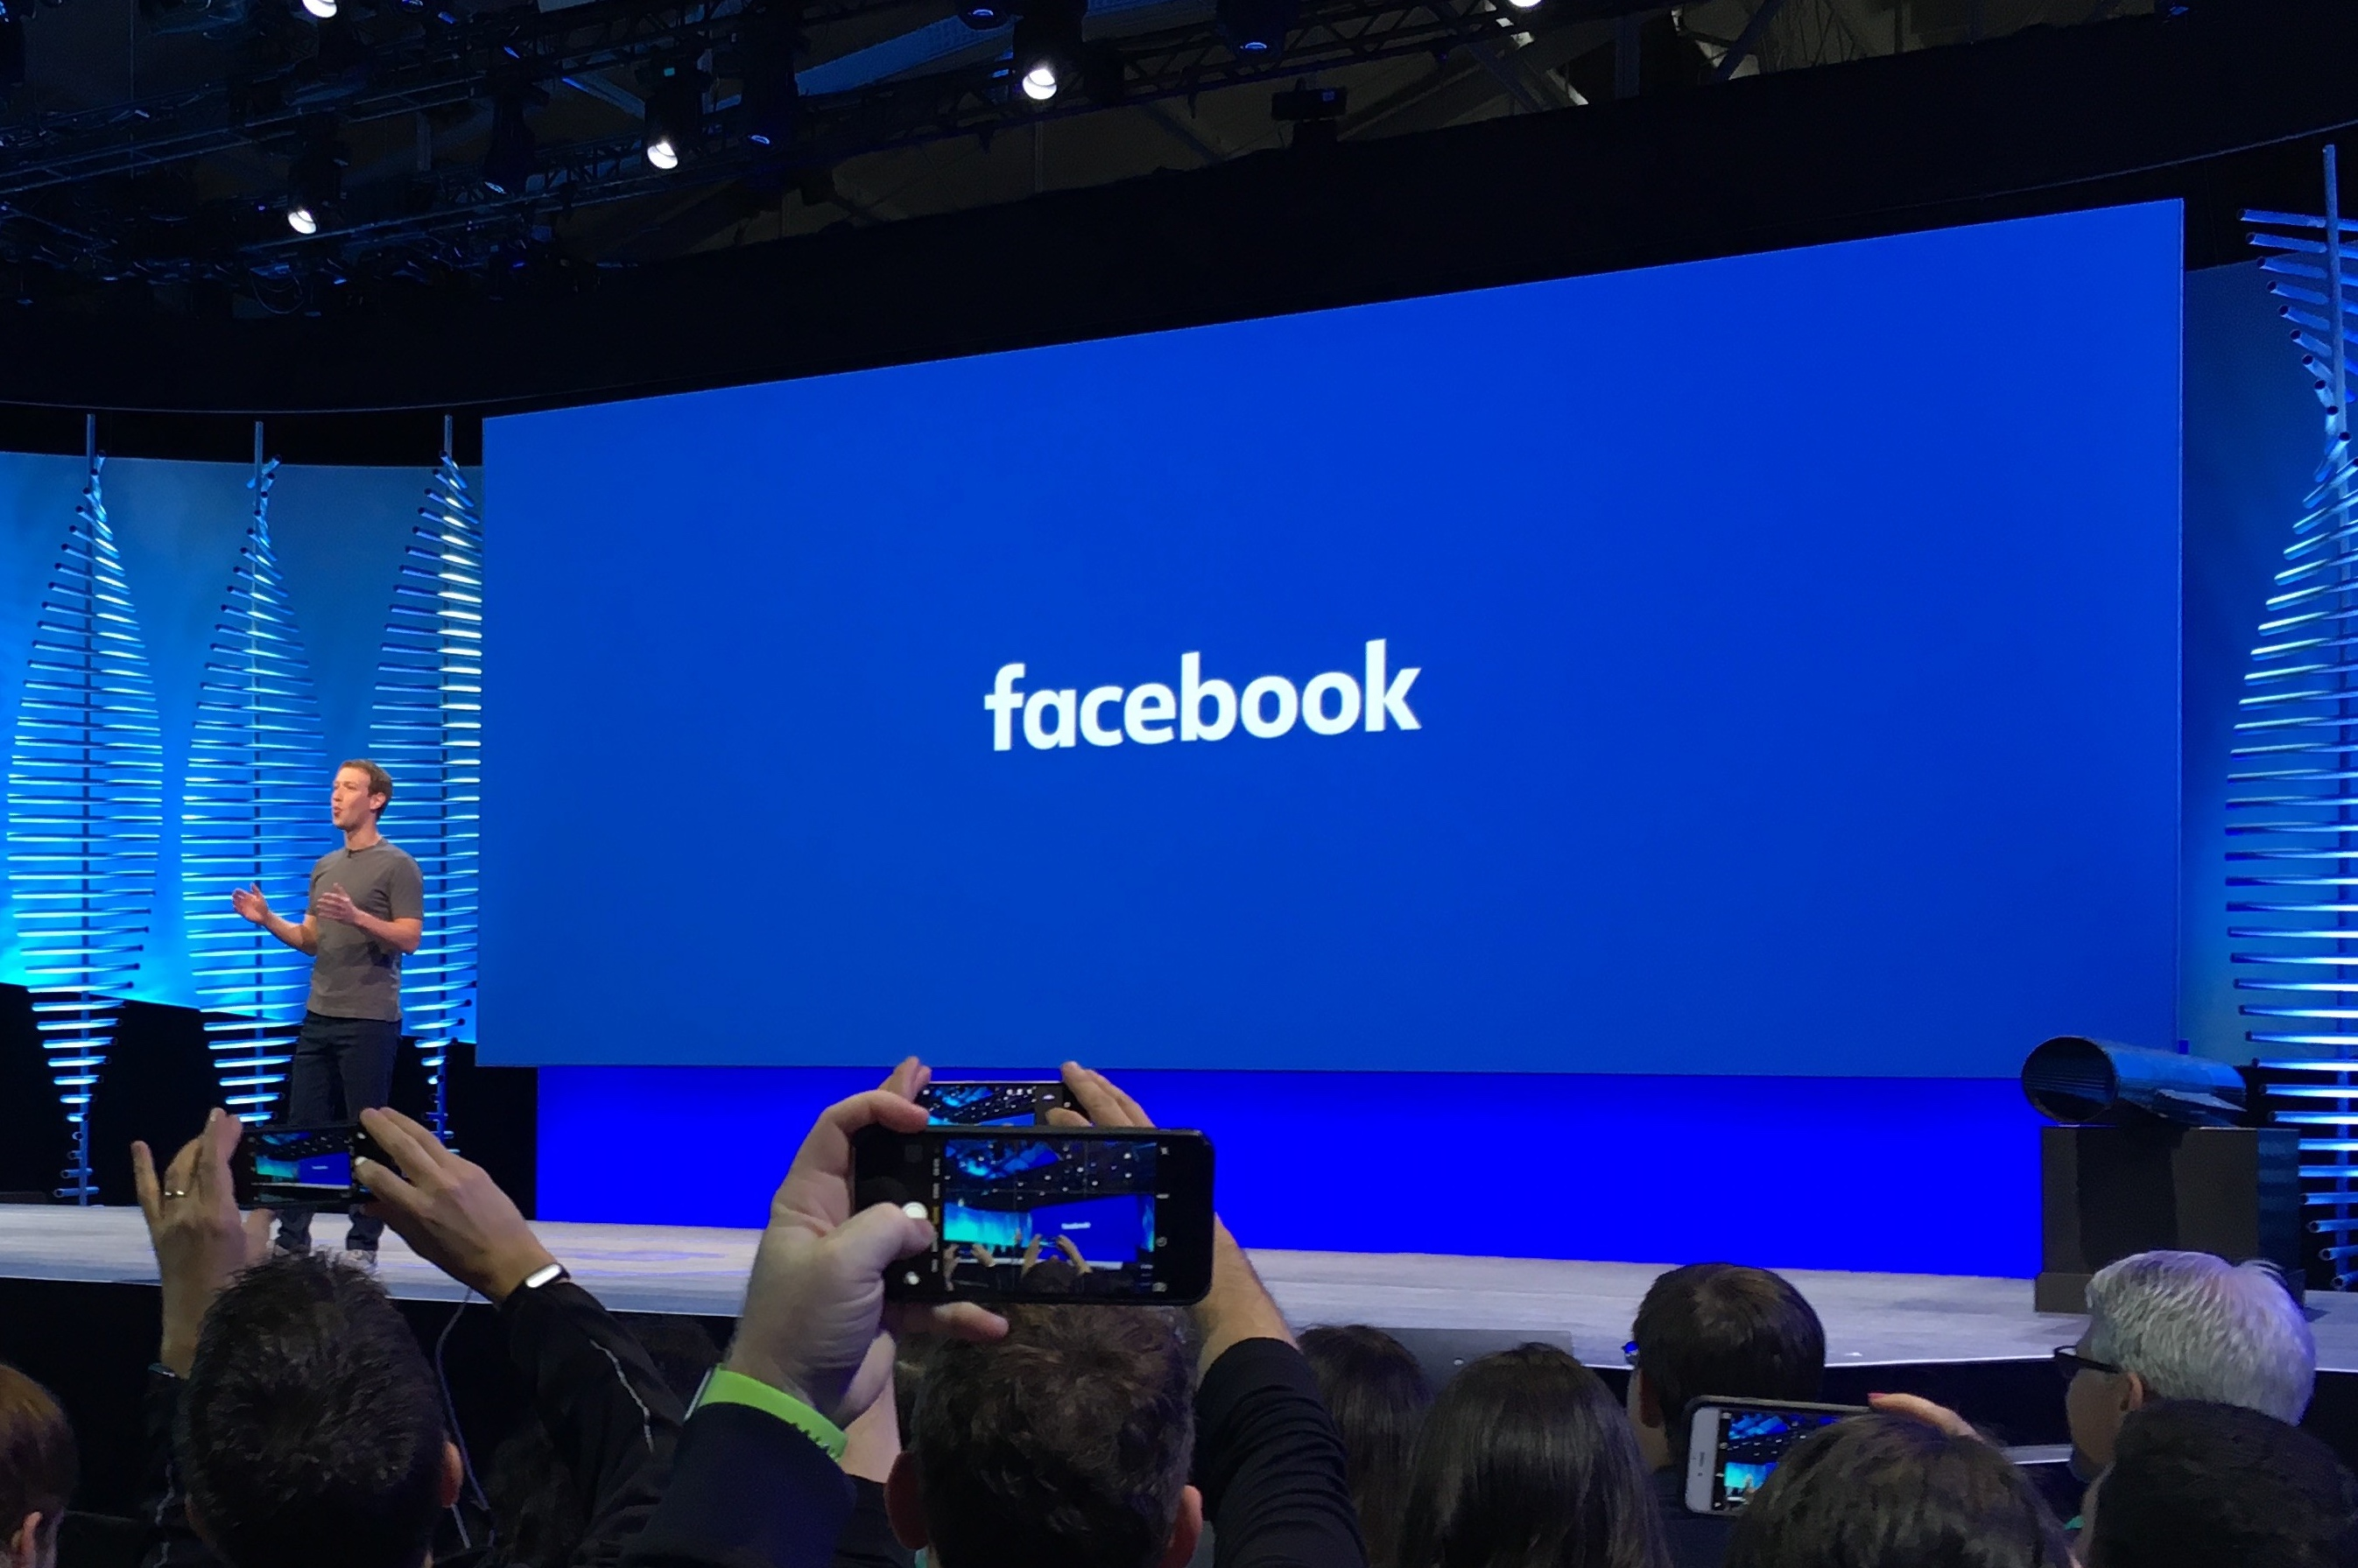 Facebook rolls out new tools for mobile advertisers